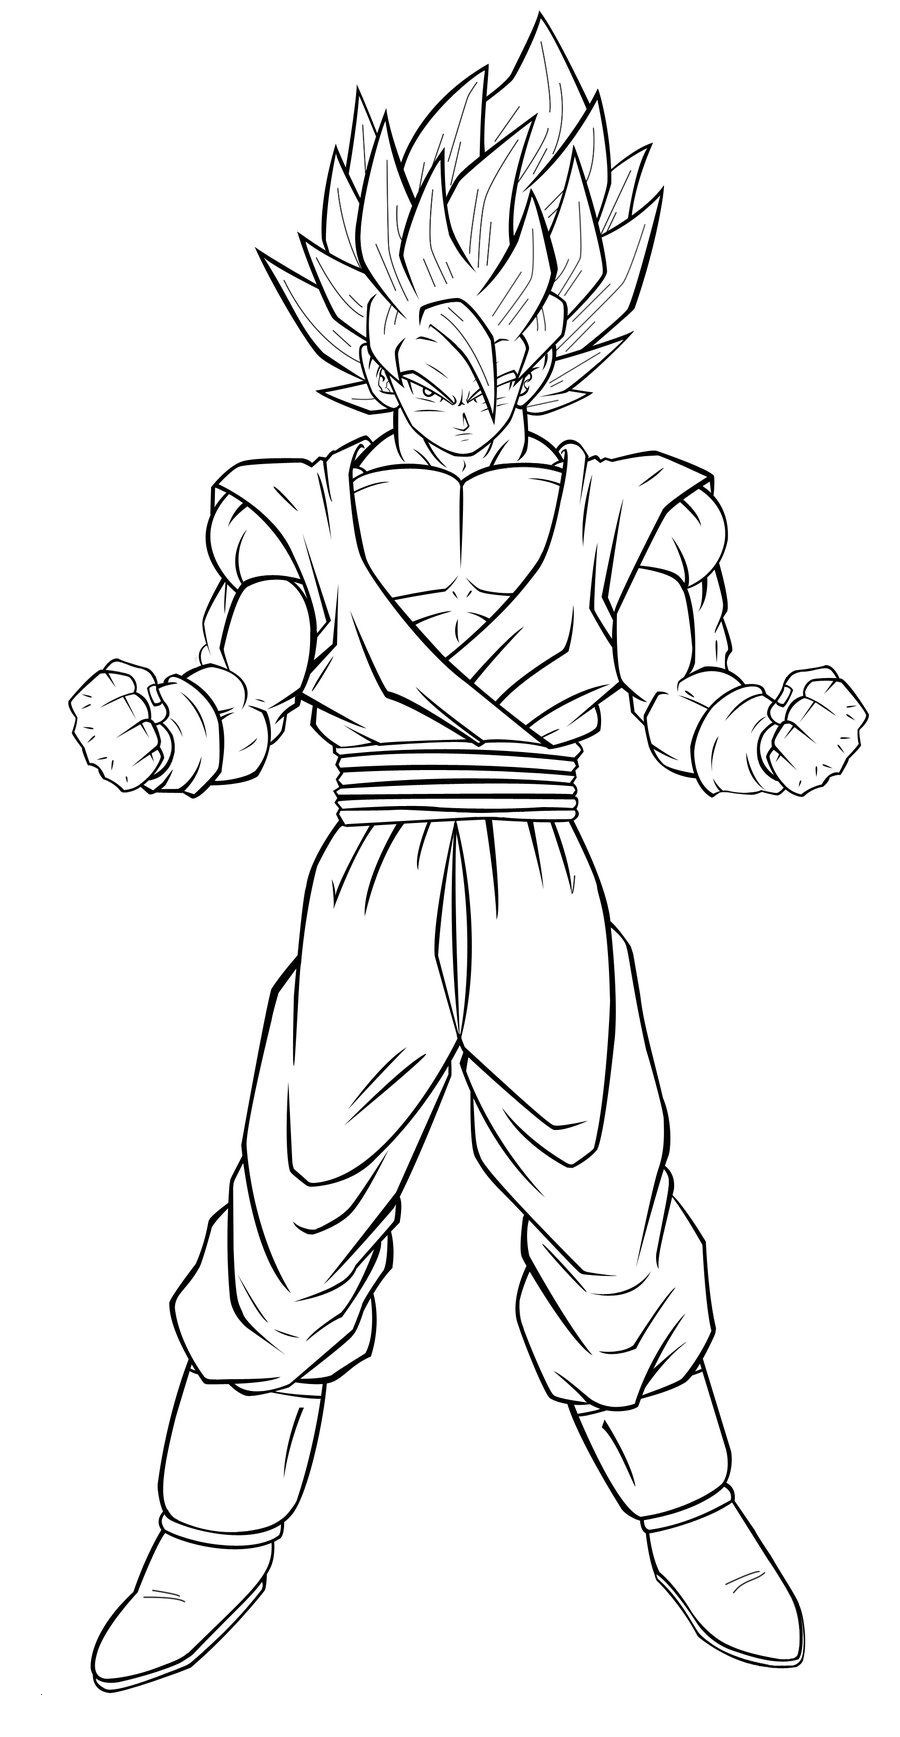 23 Dragon Ball Z Coloring Pages Gallery Coloring Sheets